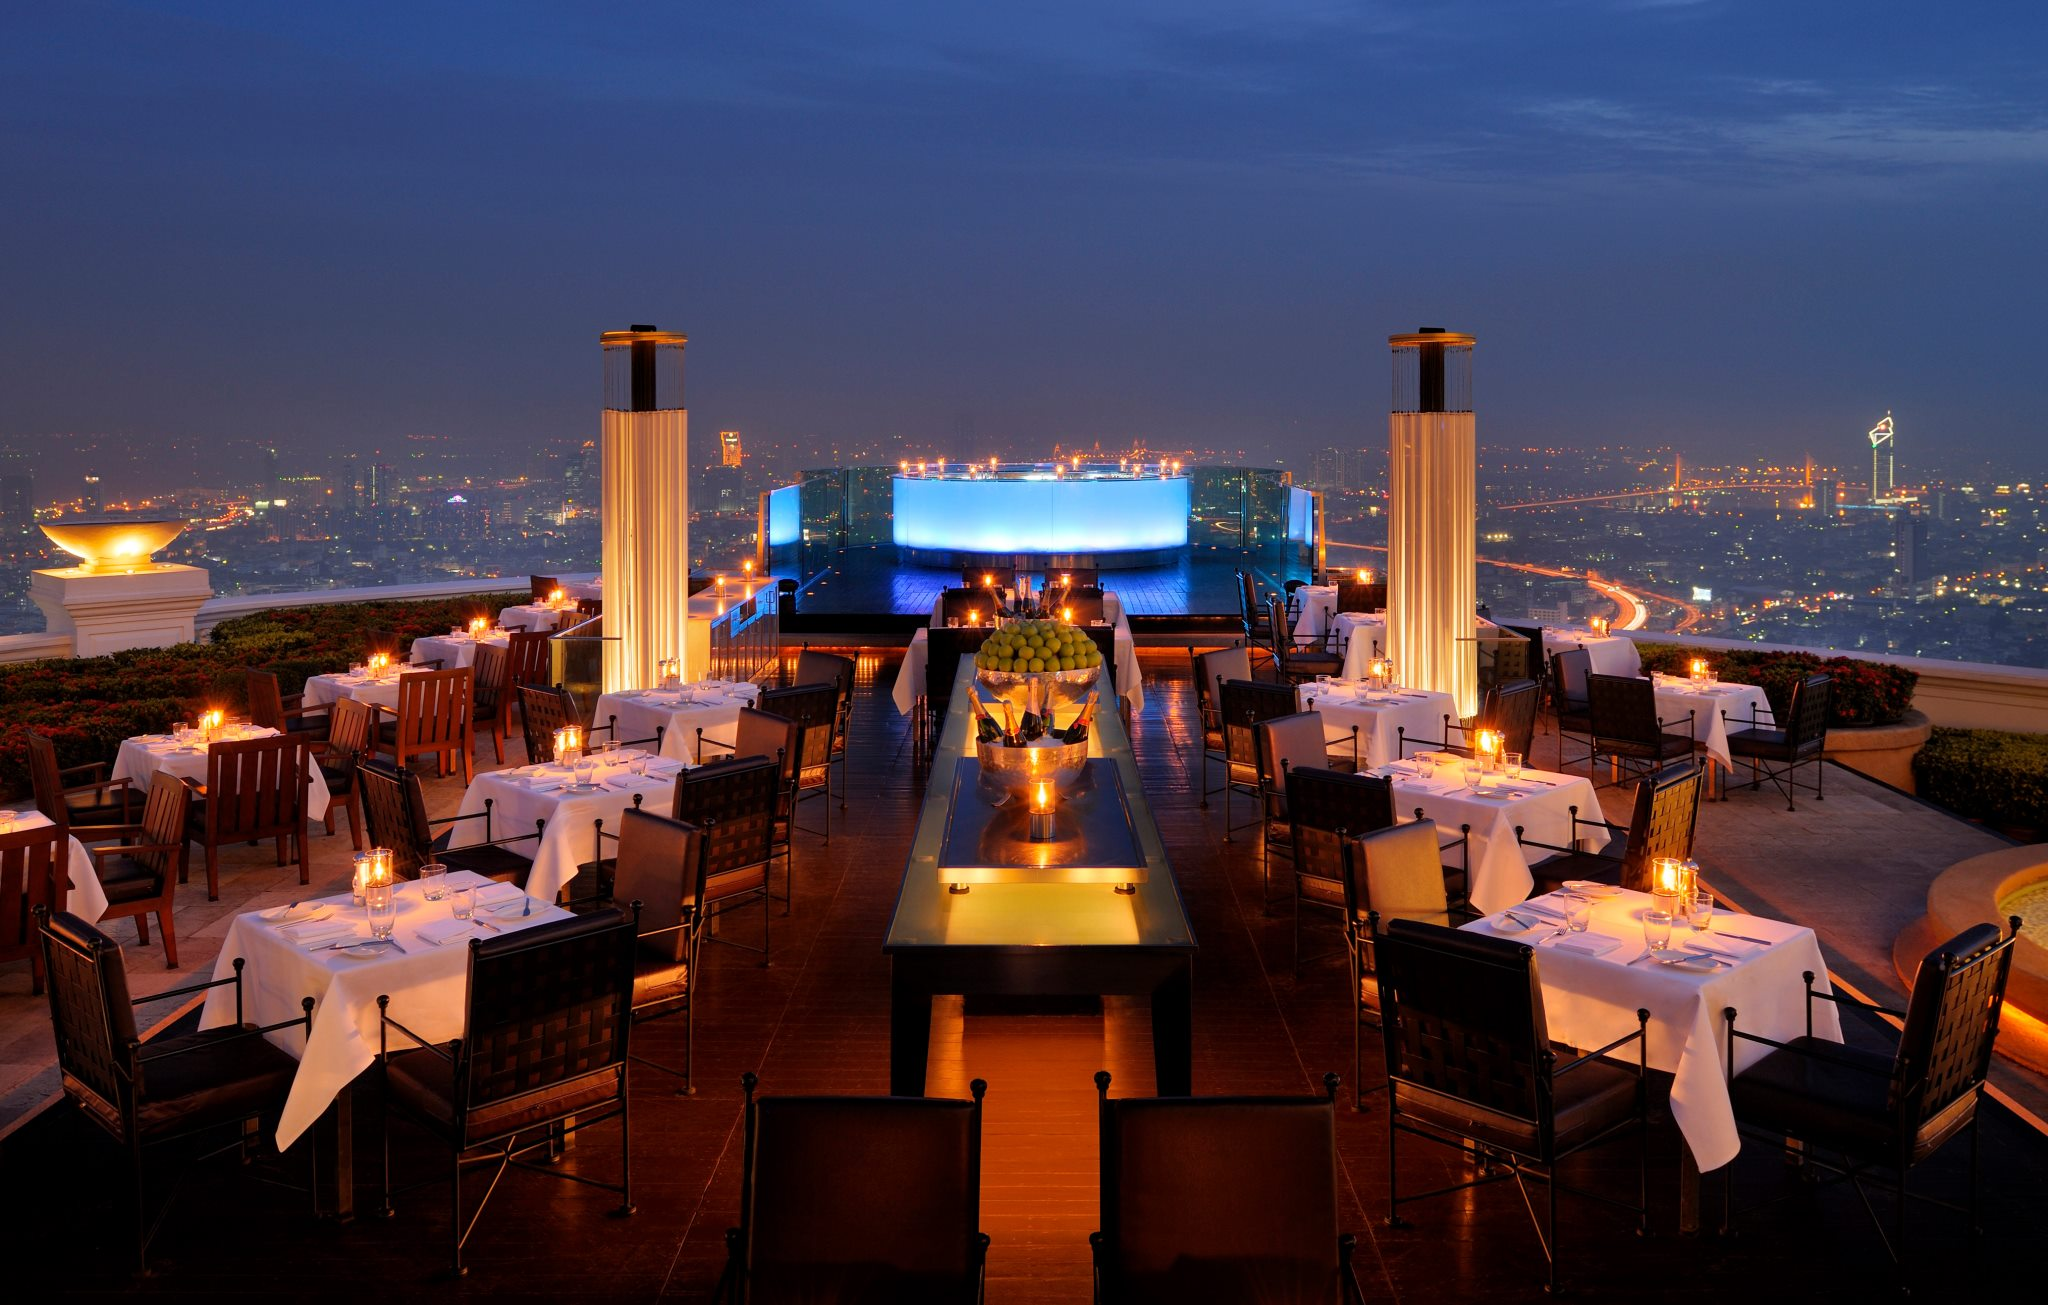 Vertigo & Moon Bar, banyan Tree Hotel, Bangkok, Thailand.  Hangover 2 anyone?